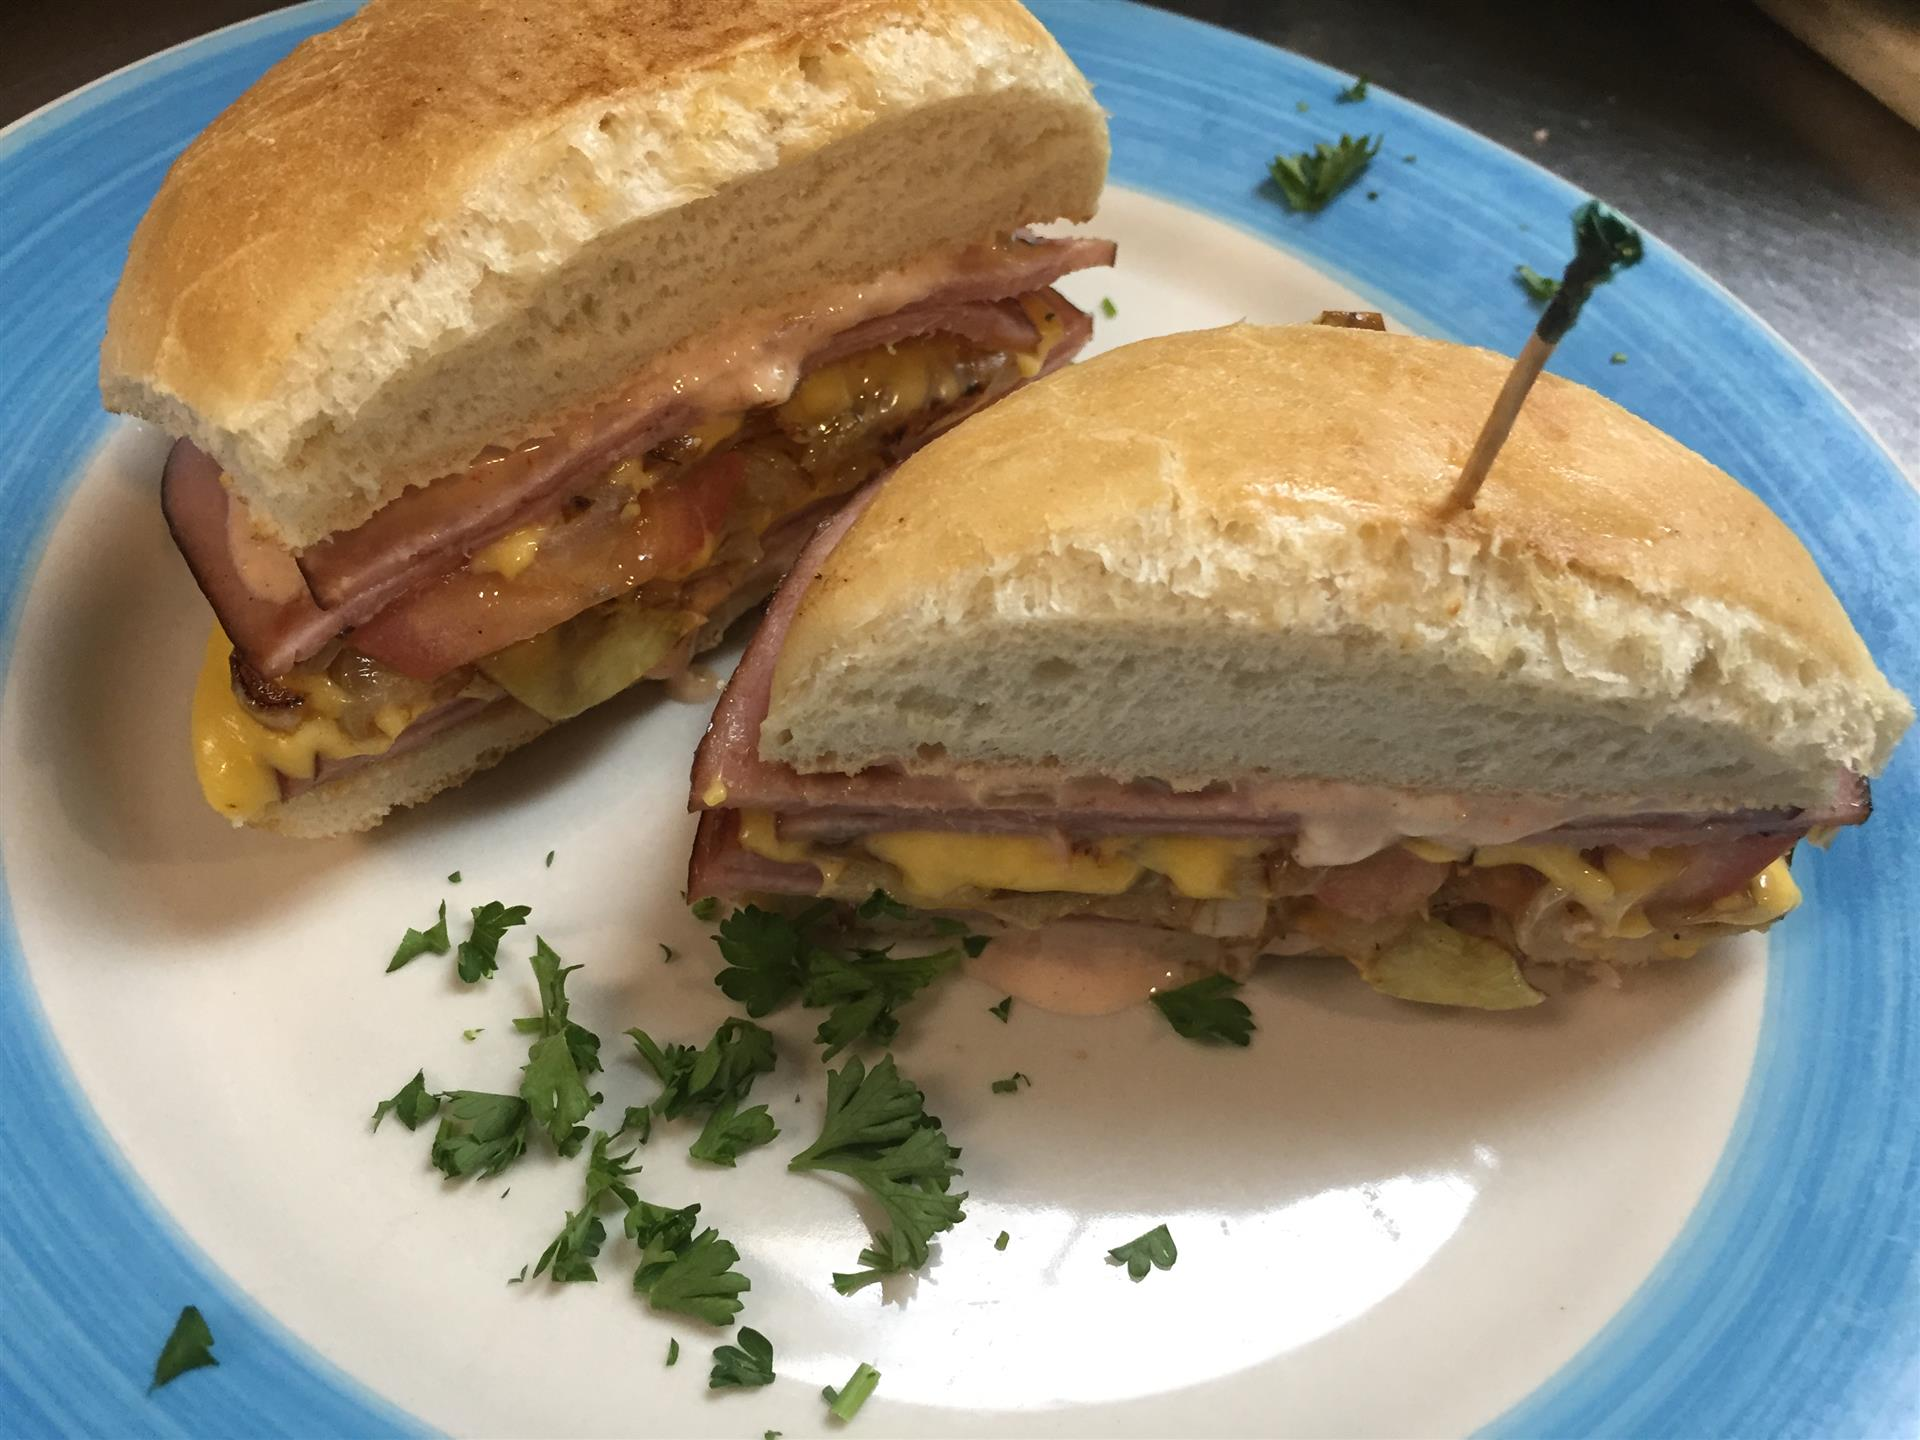 breakfast sandwhich with ham and eggs